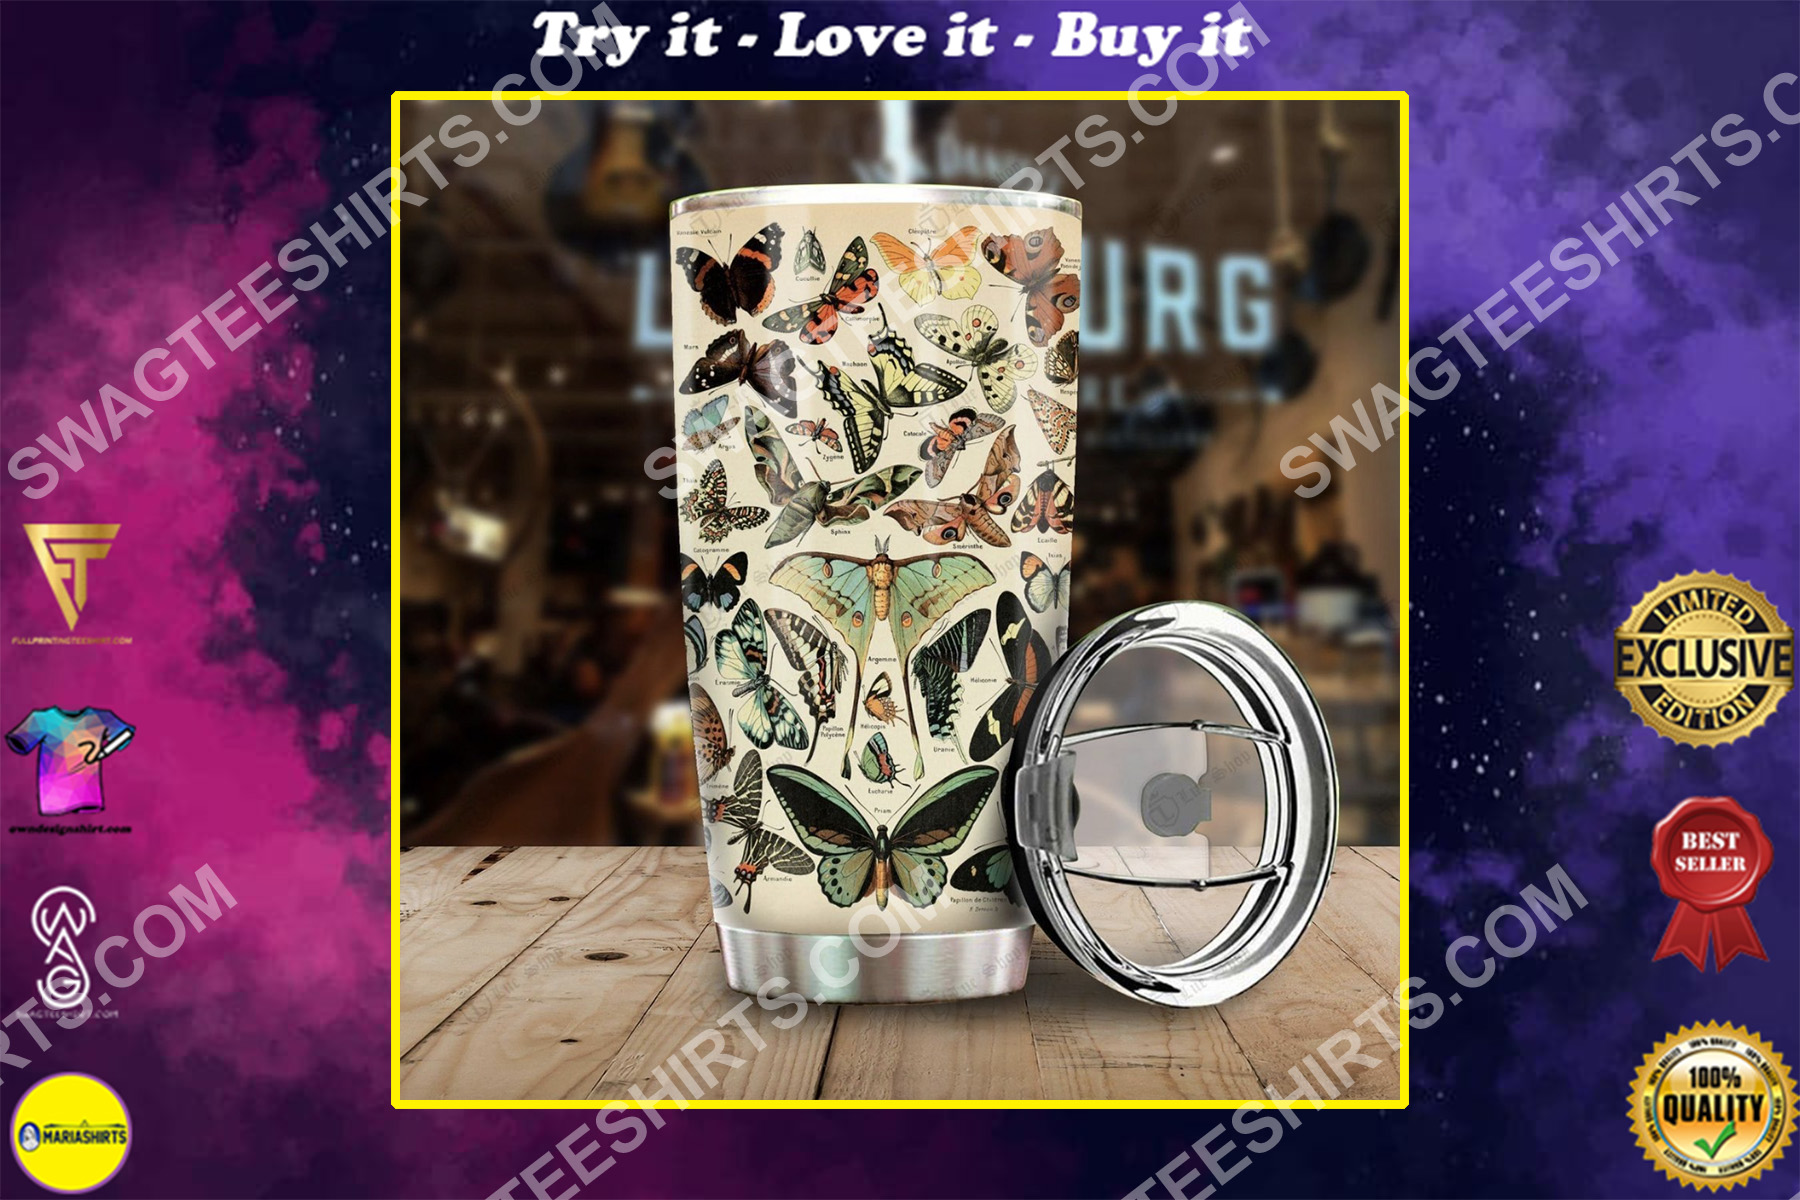 butterfly breeds all over printed stainless steel tumbler